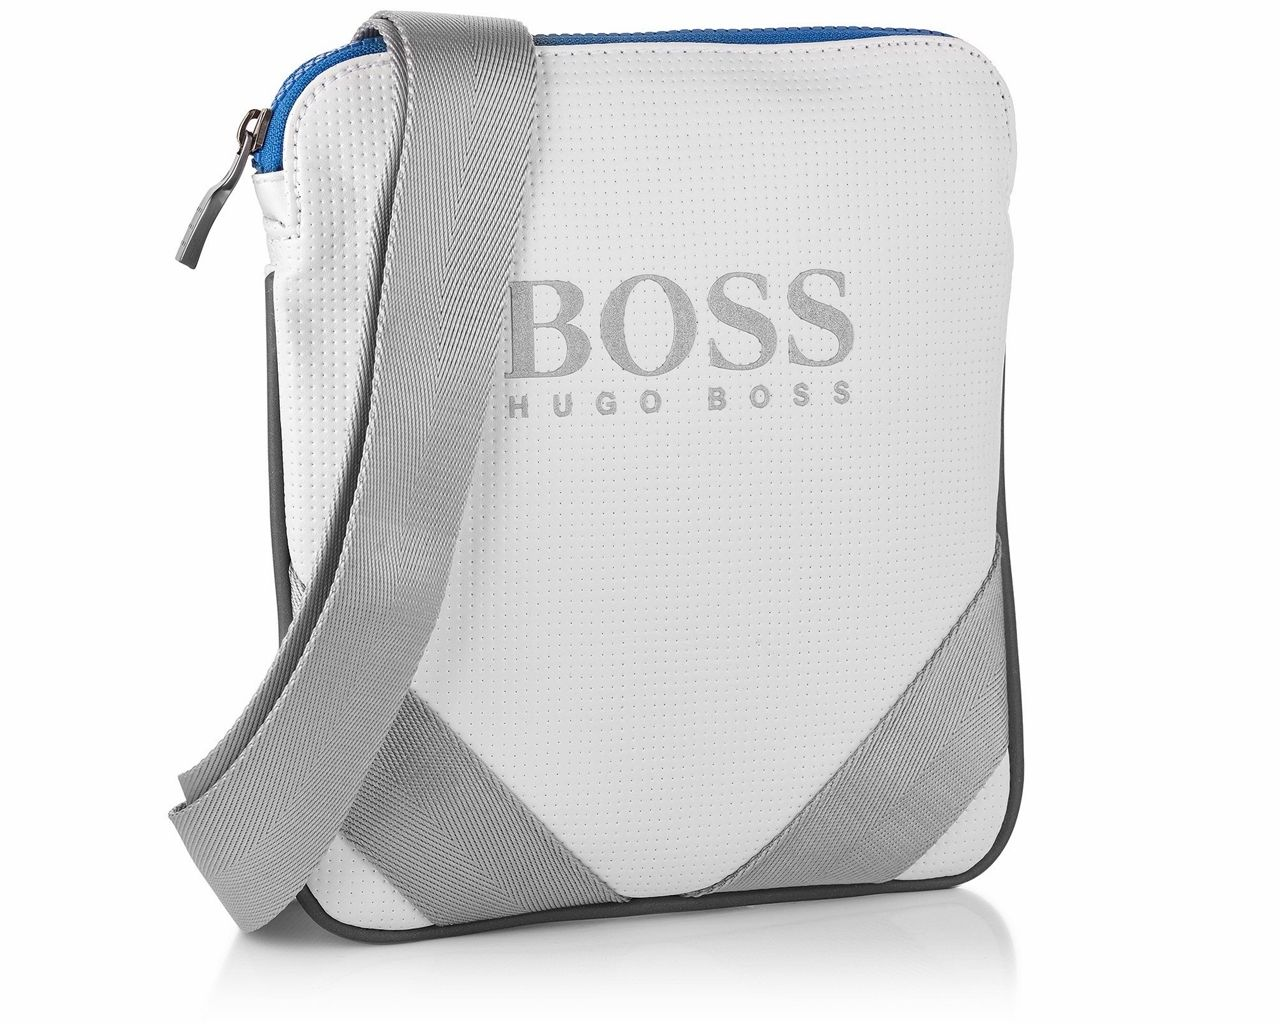 Hugo boss mens bags. Handbags and Purses on Bags-Purses.com